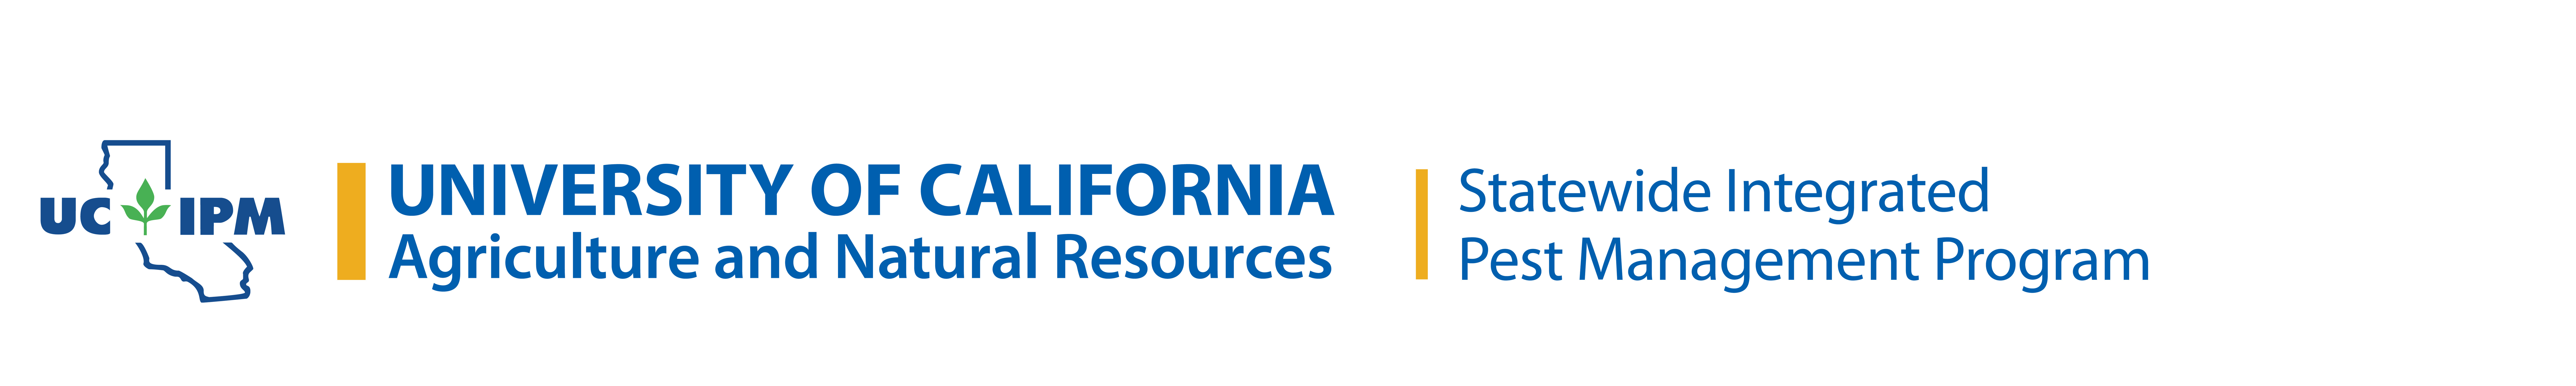 Logo of the University of California Statewide Integrated Pest Management Program.